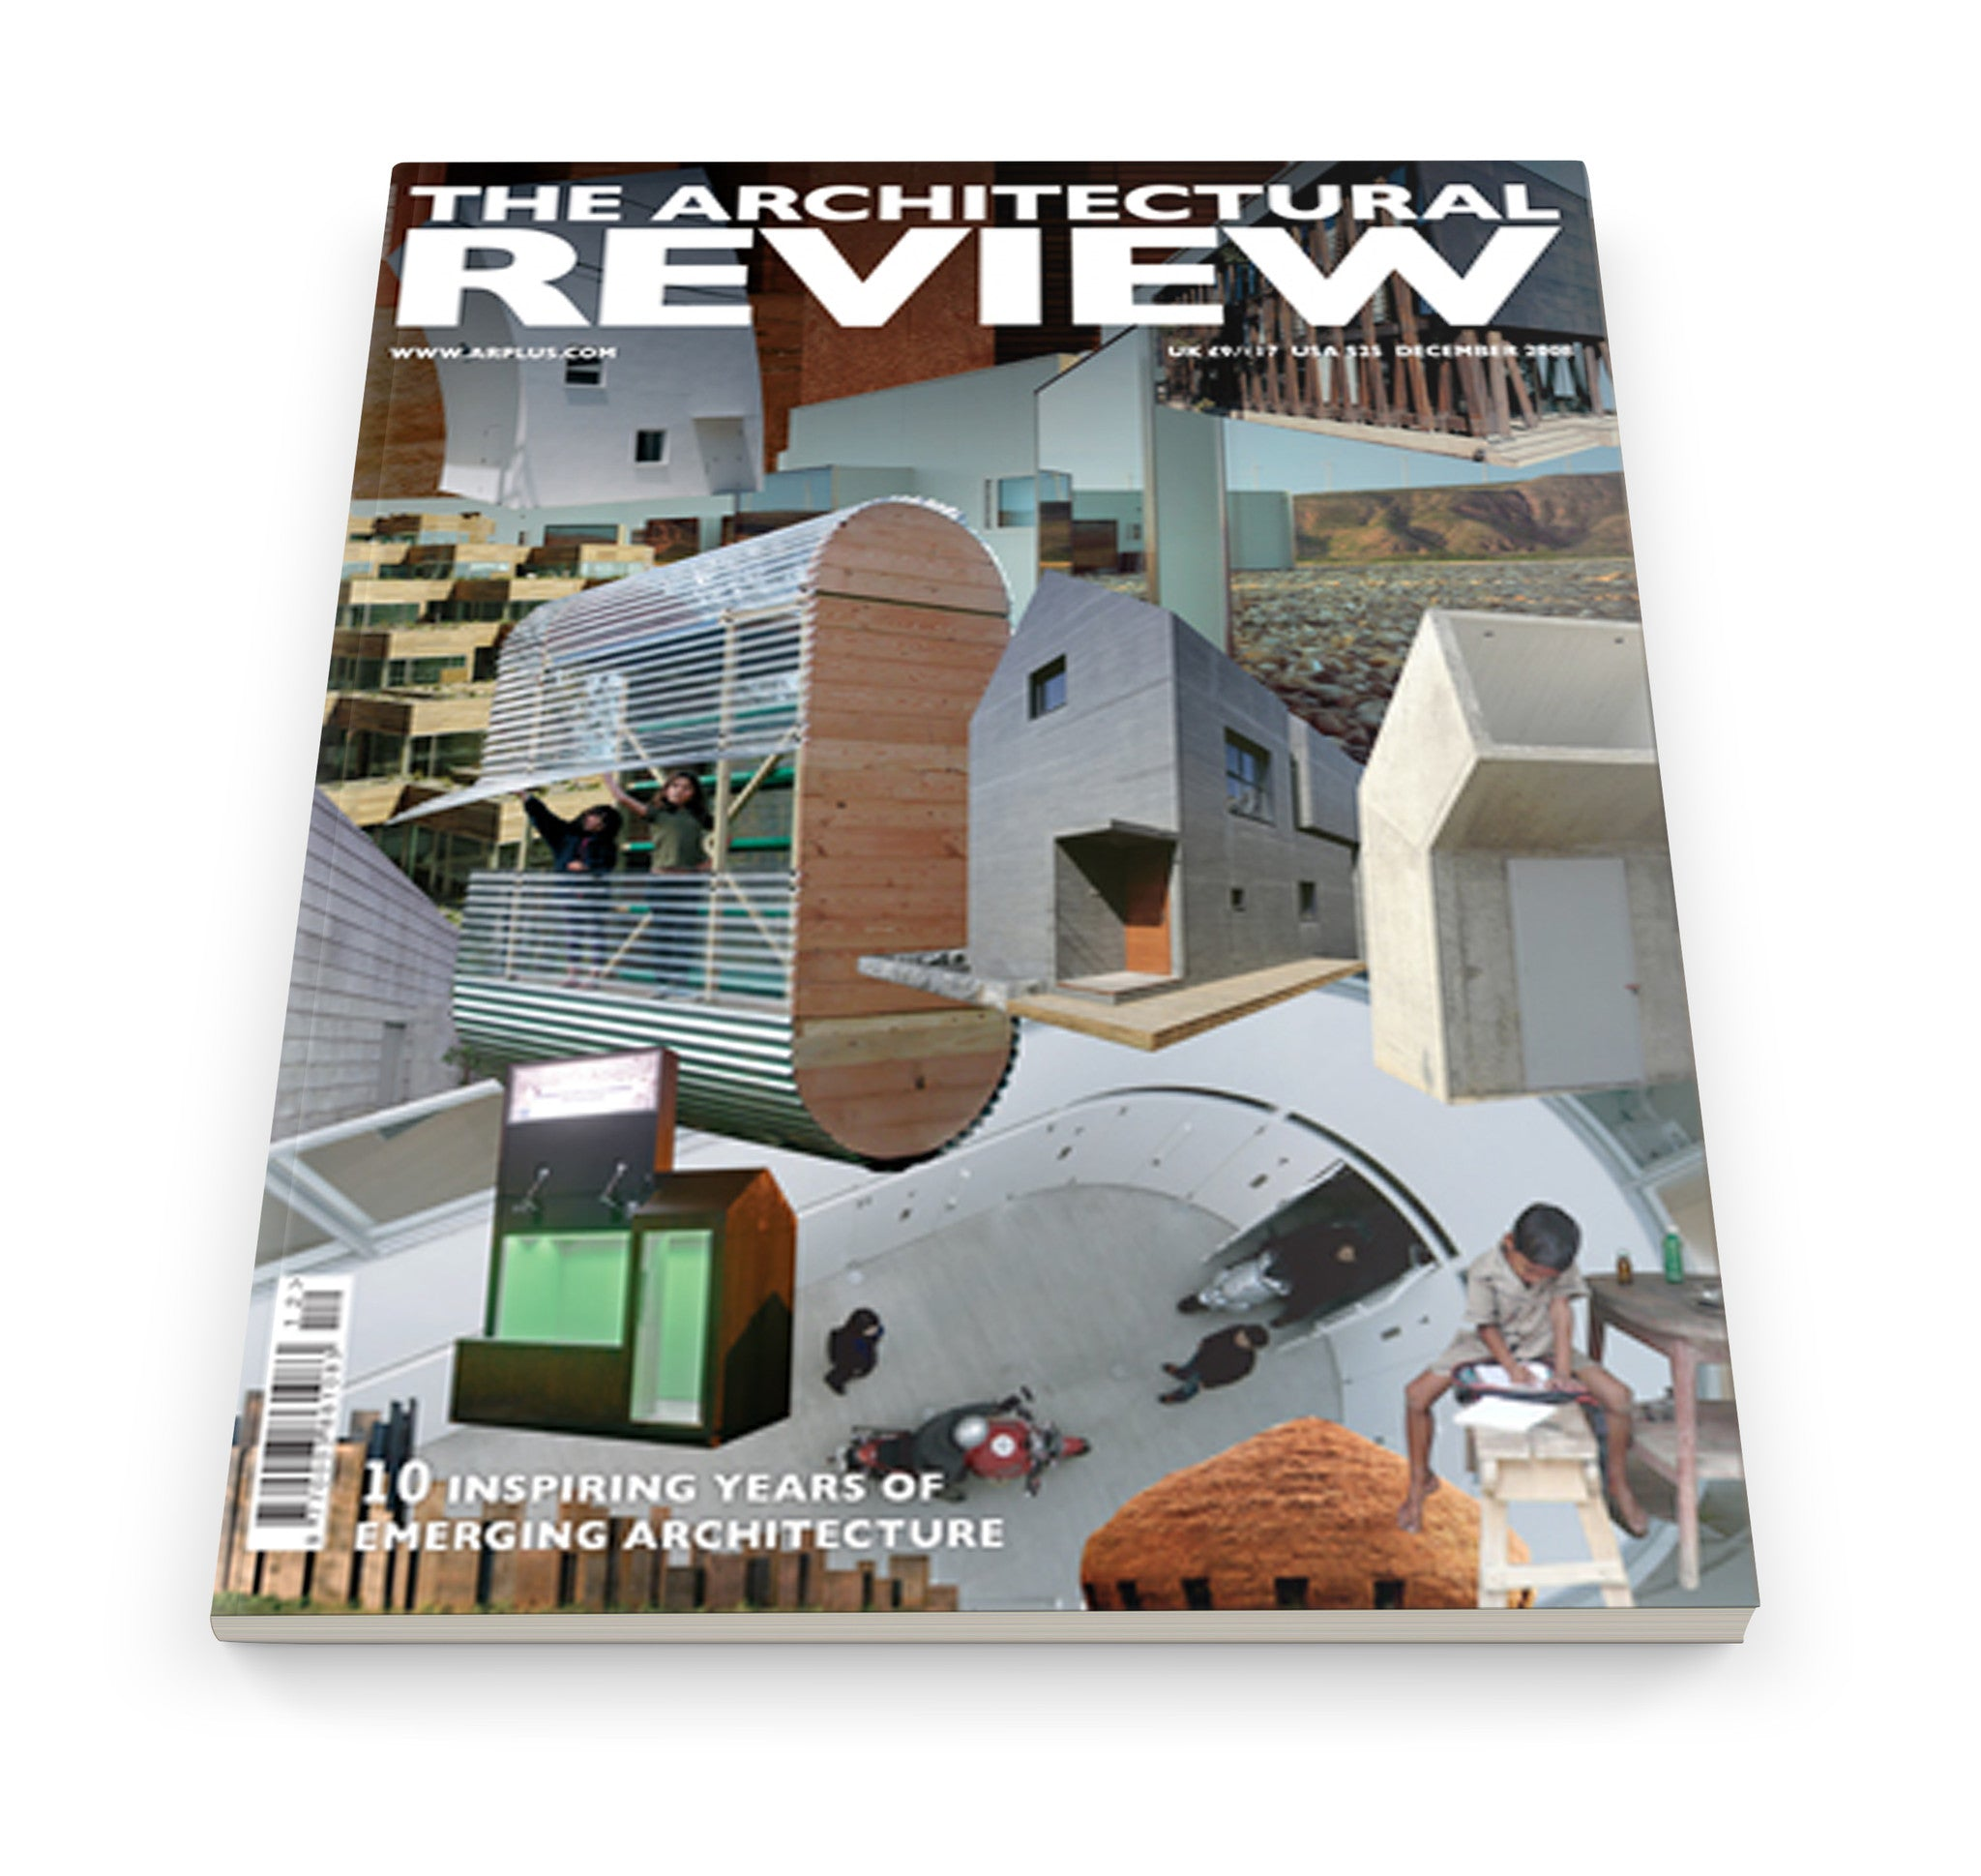 The Architectural Review Issue 1319, January 2007